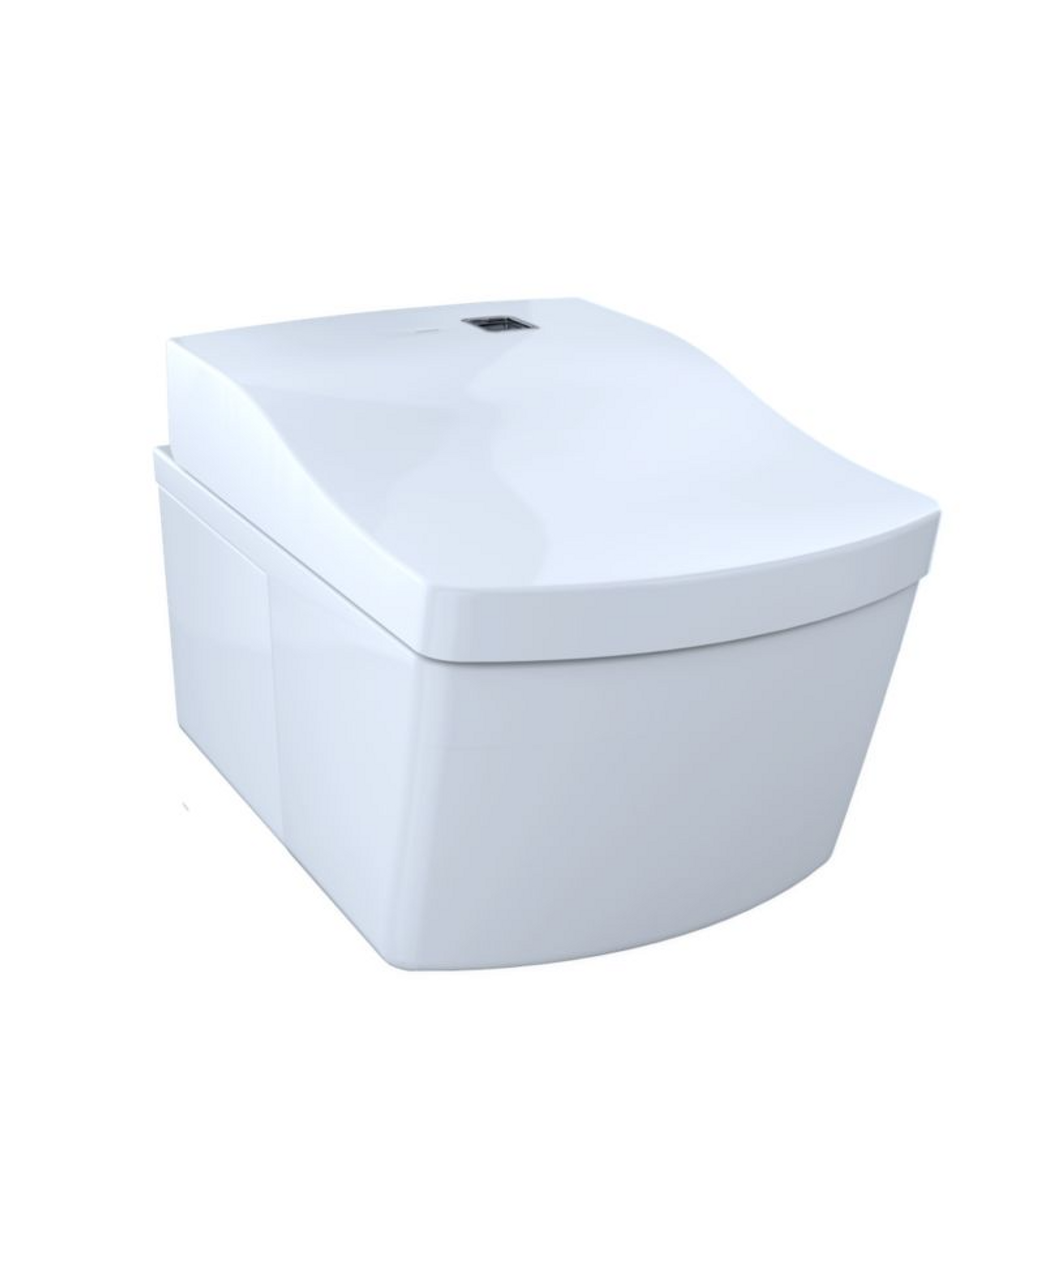 TOTO Neorest EW Wall Hung - Dual Flush - One Piece Toilet and Bidet ...